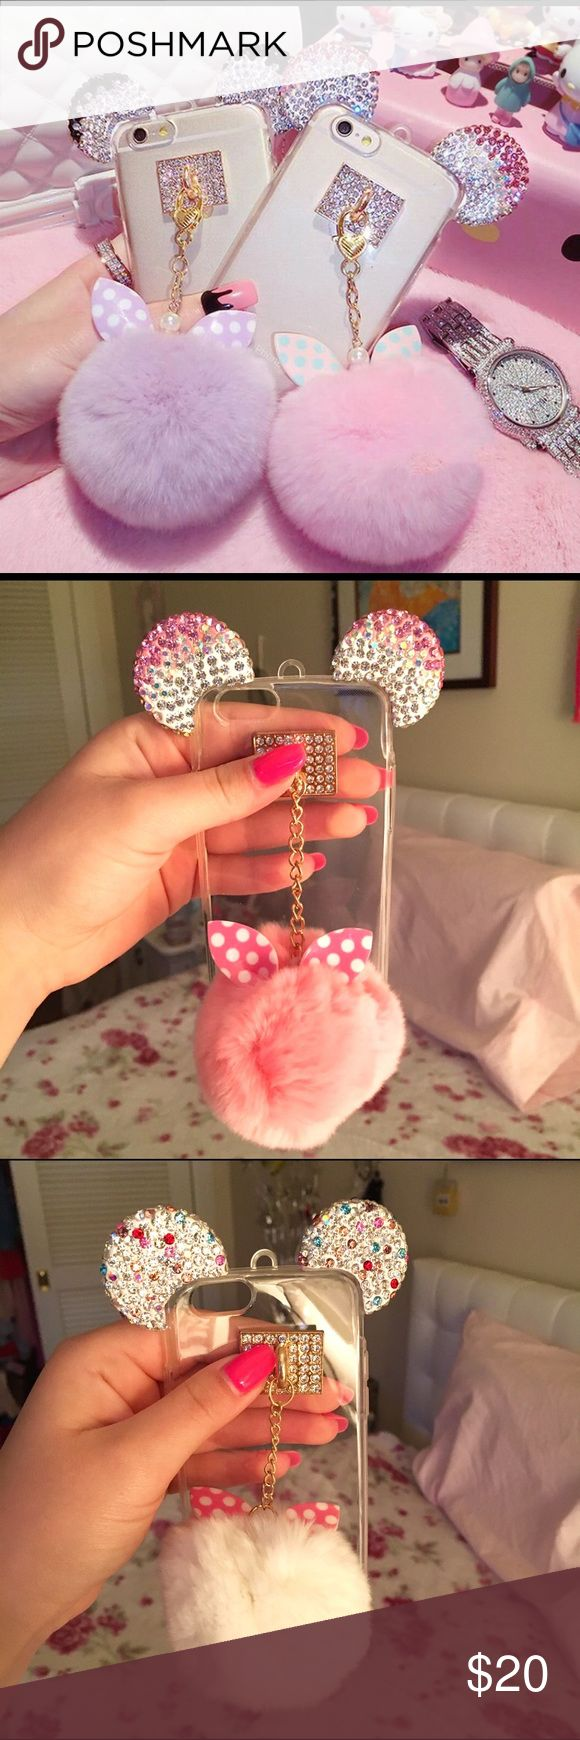 NEW! Adorable Puff Ball 6/6s Cases  ❗️LOWEST PRICE ANYWHERE ❗️  This case is too cute for words! Such an eye catcher, it's guaranteed to be the envy of all your friends! So sparkly and adorable, it reminds me of Disney or Victoria's Secret!  ♡ THIS LISTING IS FOR ONE CASE! ♡ In stock: iPhone 6/6s ONLY. ♡ 100% BRAND NEW ♡ Retails for $60+!! ♡ HIGHEST QUALITY TPU protects phone and screen beautifully from drops and falls!  ♡ Ships within ONE DAY! Guaranteed! ♡ Bundle to save! Buy 2 or 3 for to…